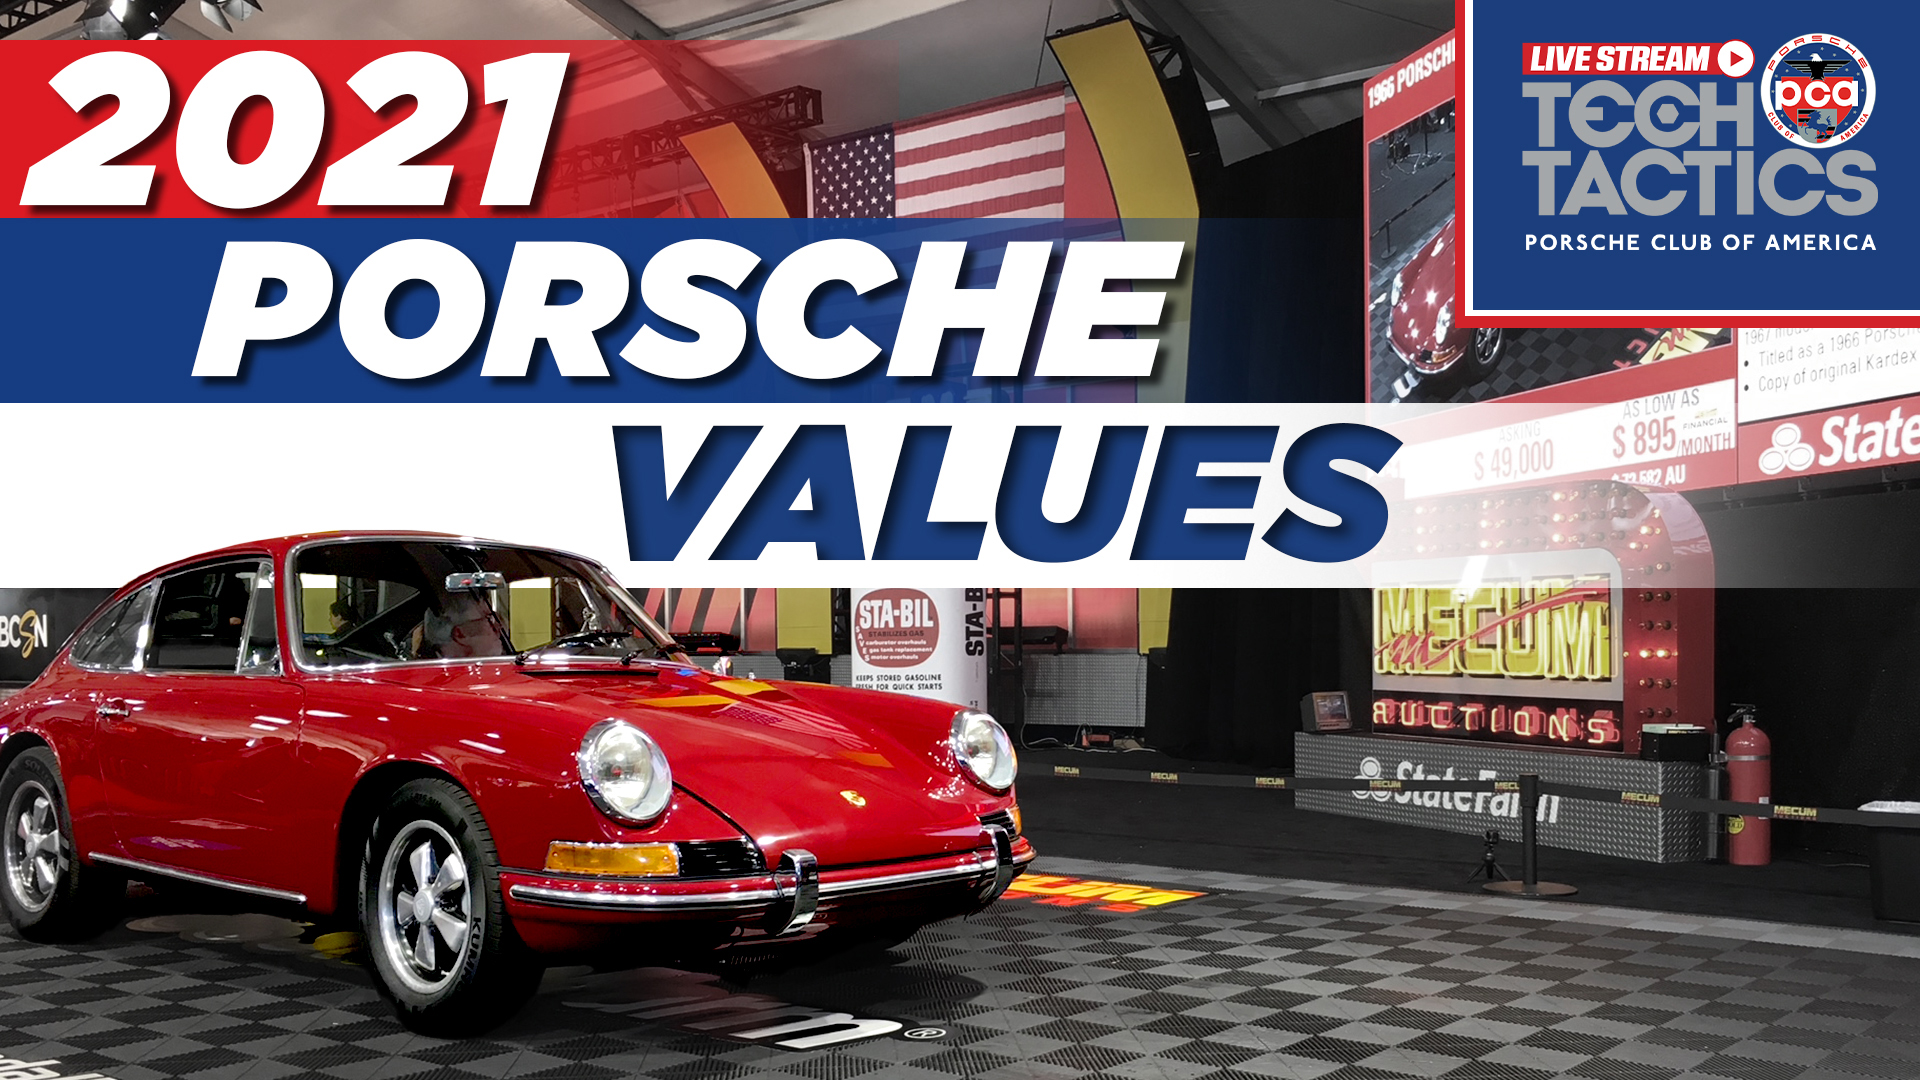 photo of 2021 Porsche values: What's hot and what's not | Tech Tactics Live image